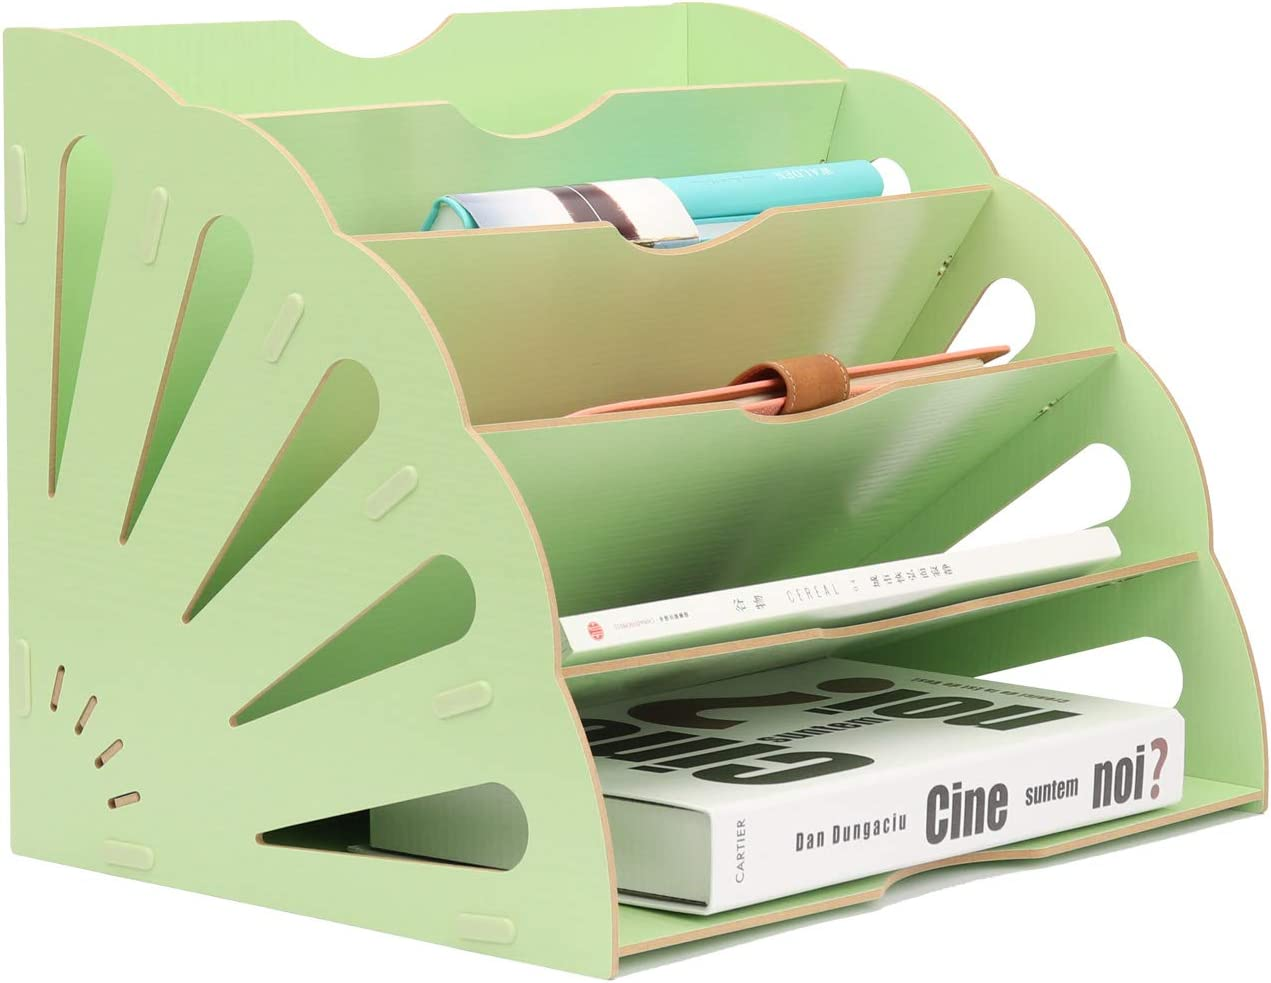 5 Compartments Assembly Wood File Organizer, Buckle Design Desktop Fan-Shaped Mail Letter Document Magazine File Folder Holder Wooden Assembly Divider Office Tabletop Basket Sorter Storage Box, Green